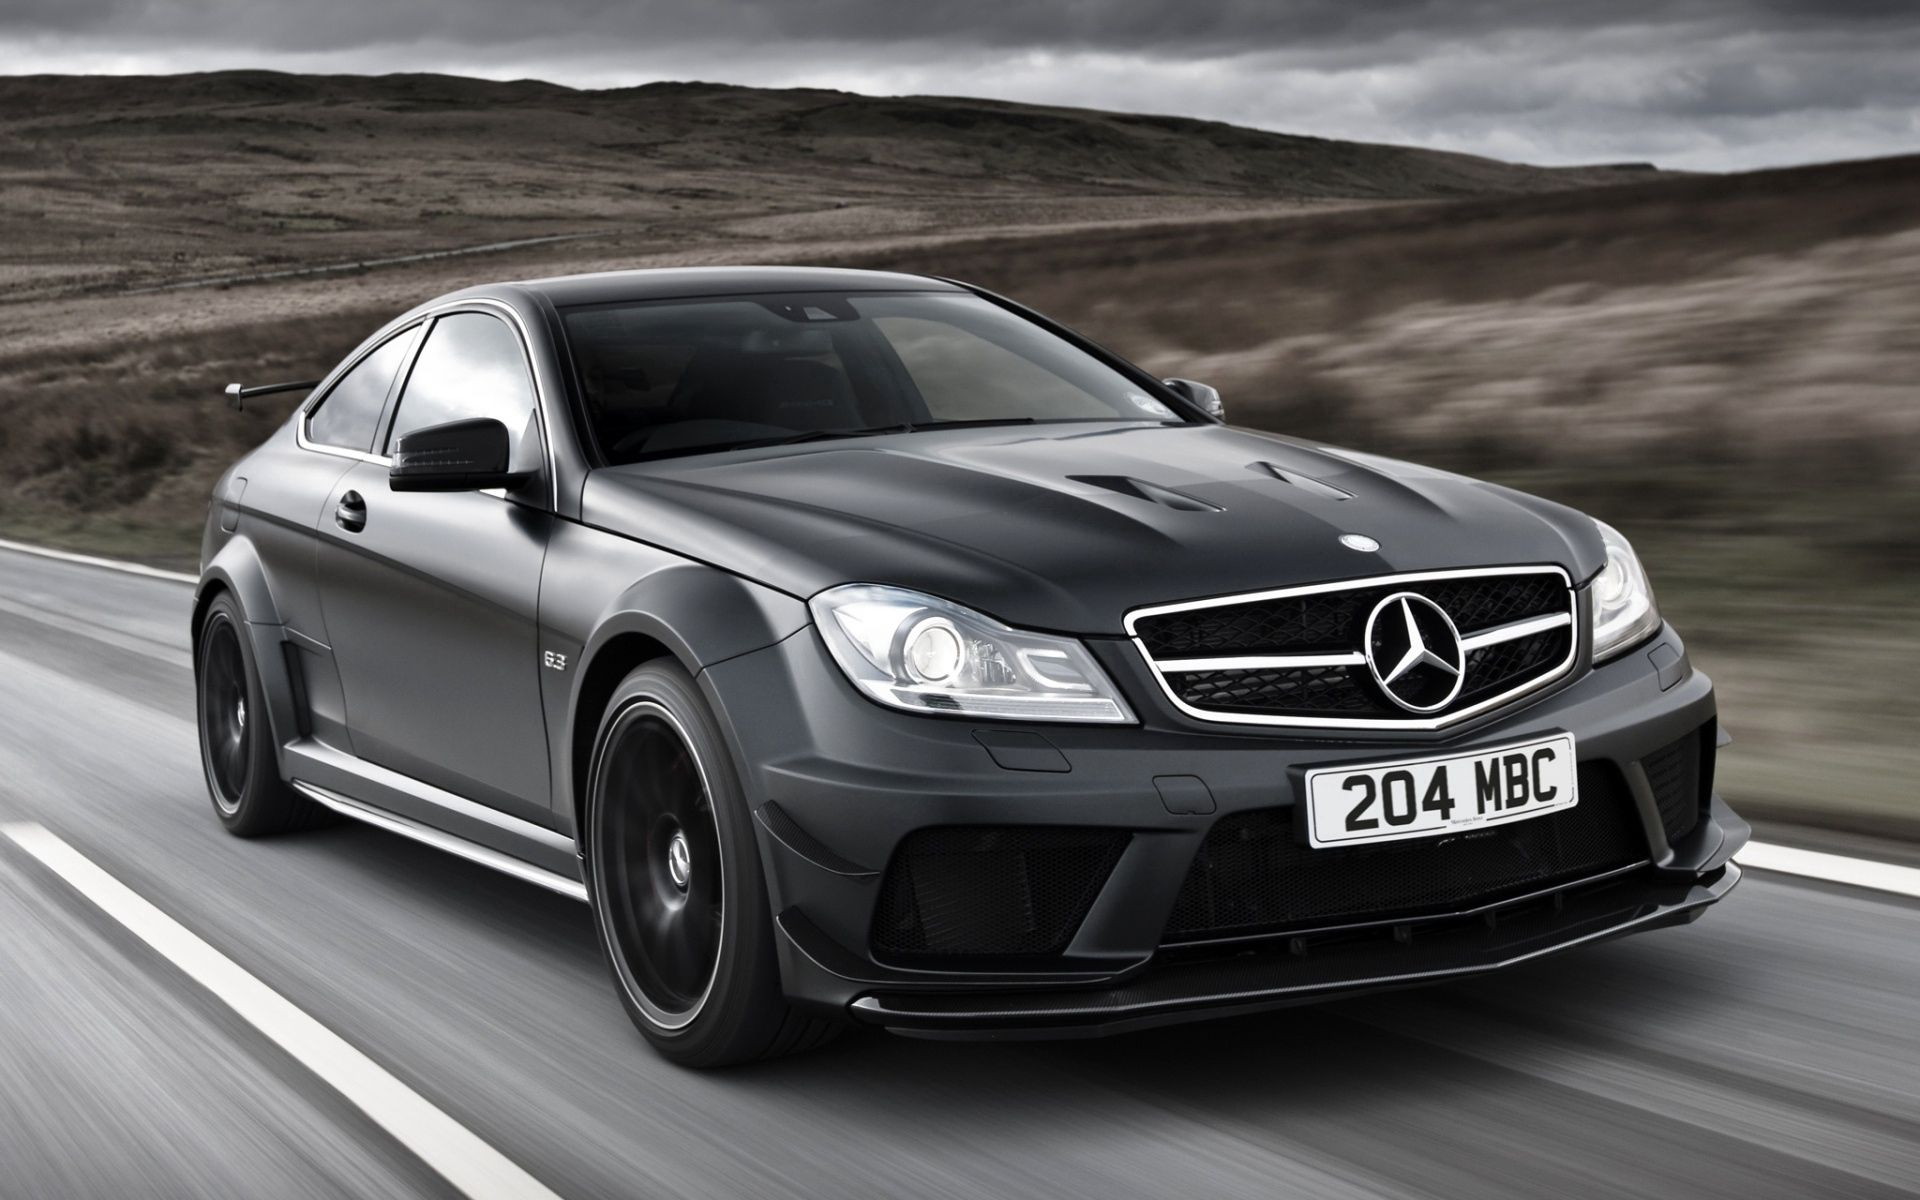 89811 download wallpaper Cars, Mercedes-Benz, G3 screensavers and pictures for free